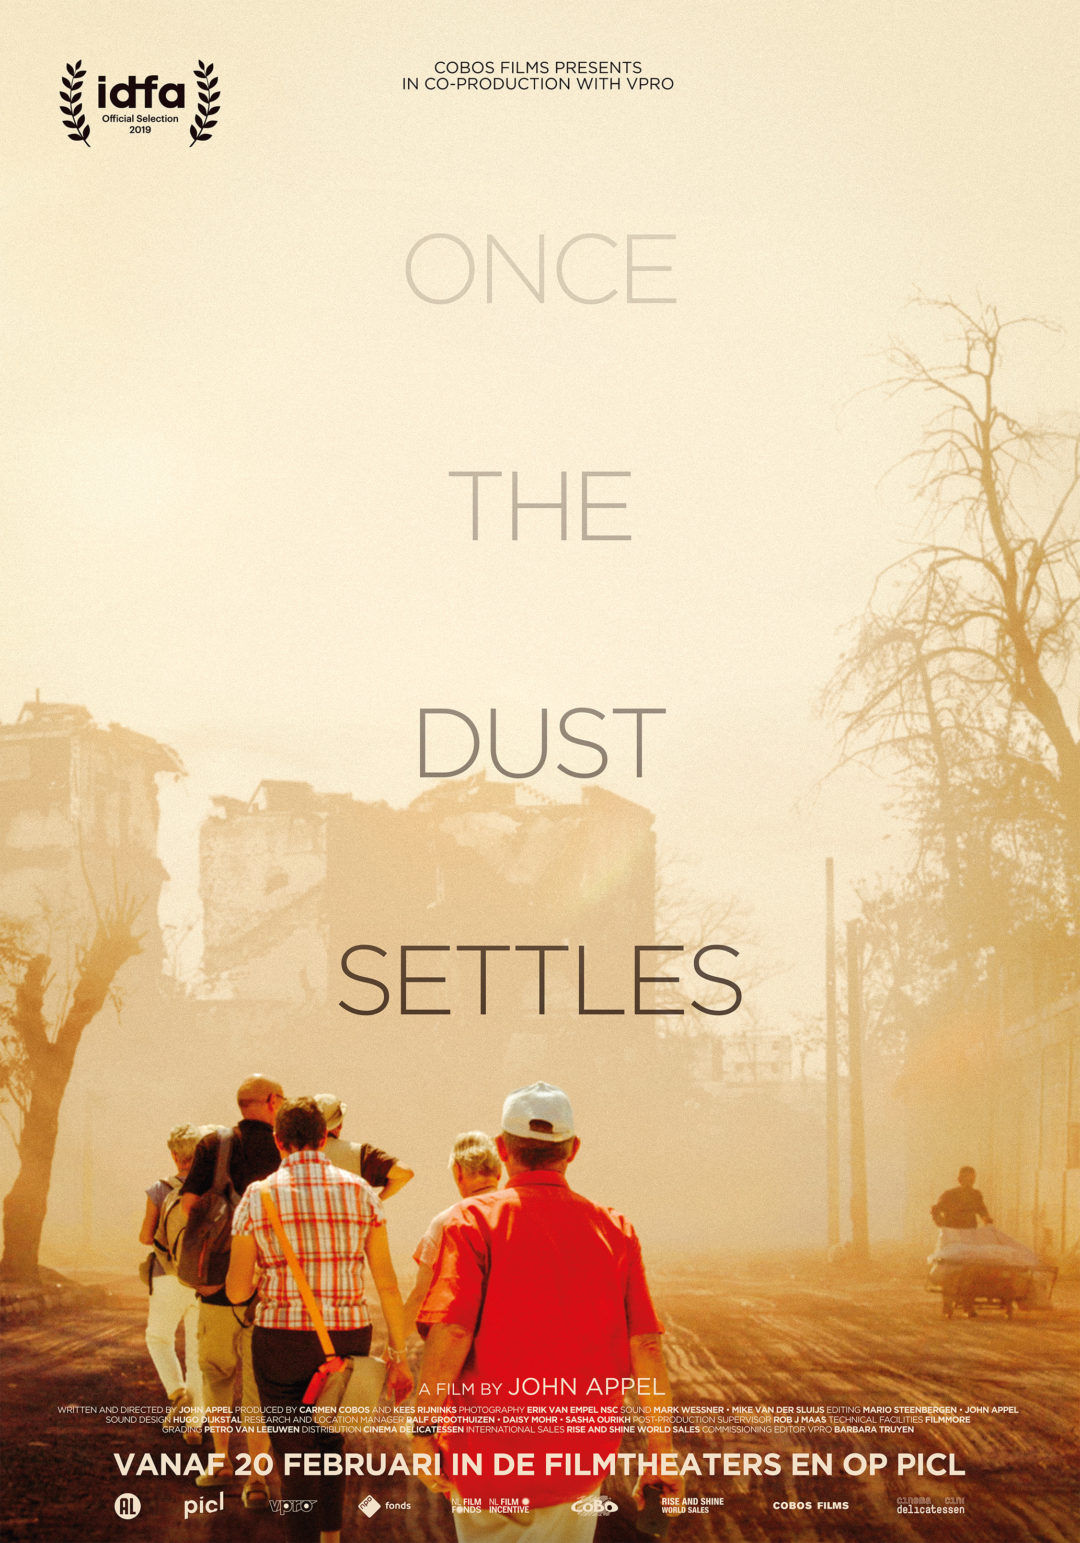 Once-the-Dust-Settles_ps_1_jpg_sd-high.jpg